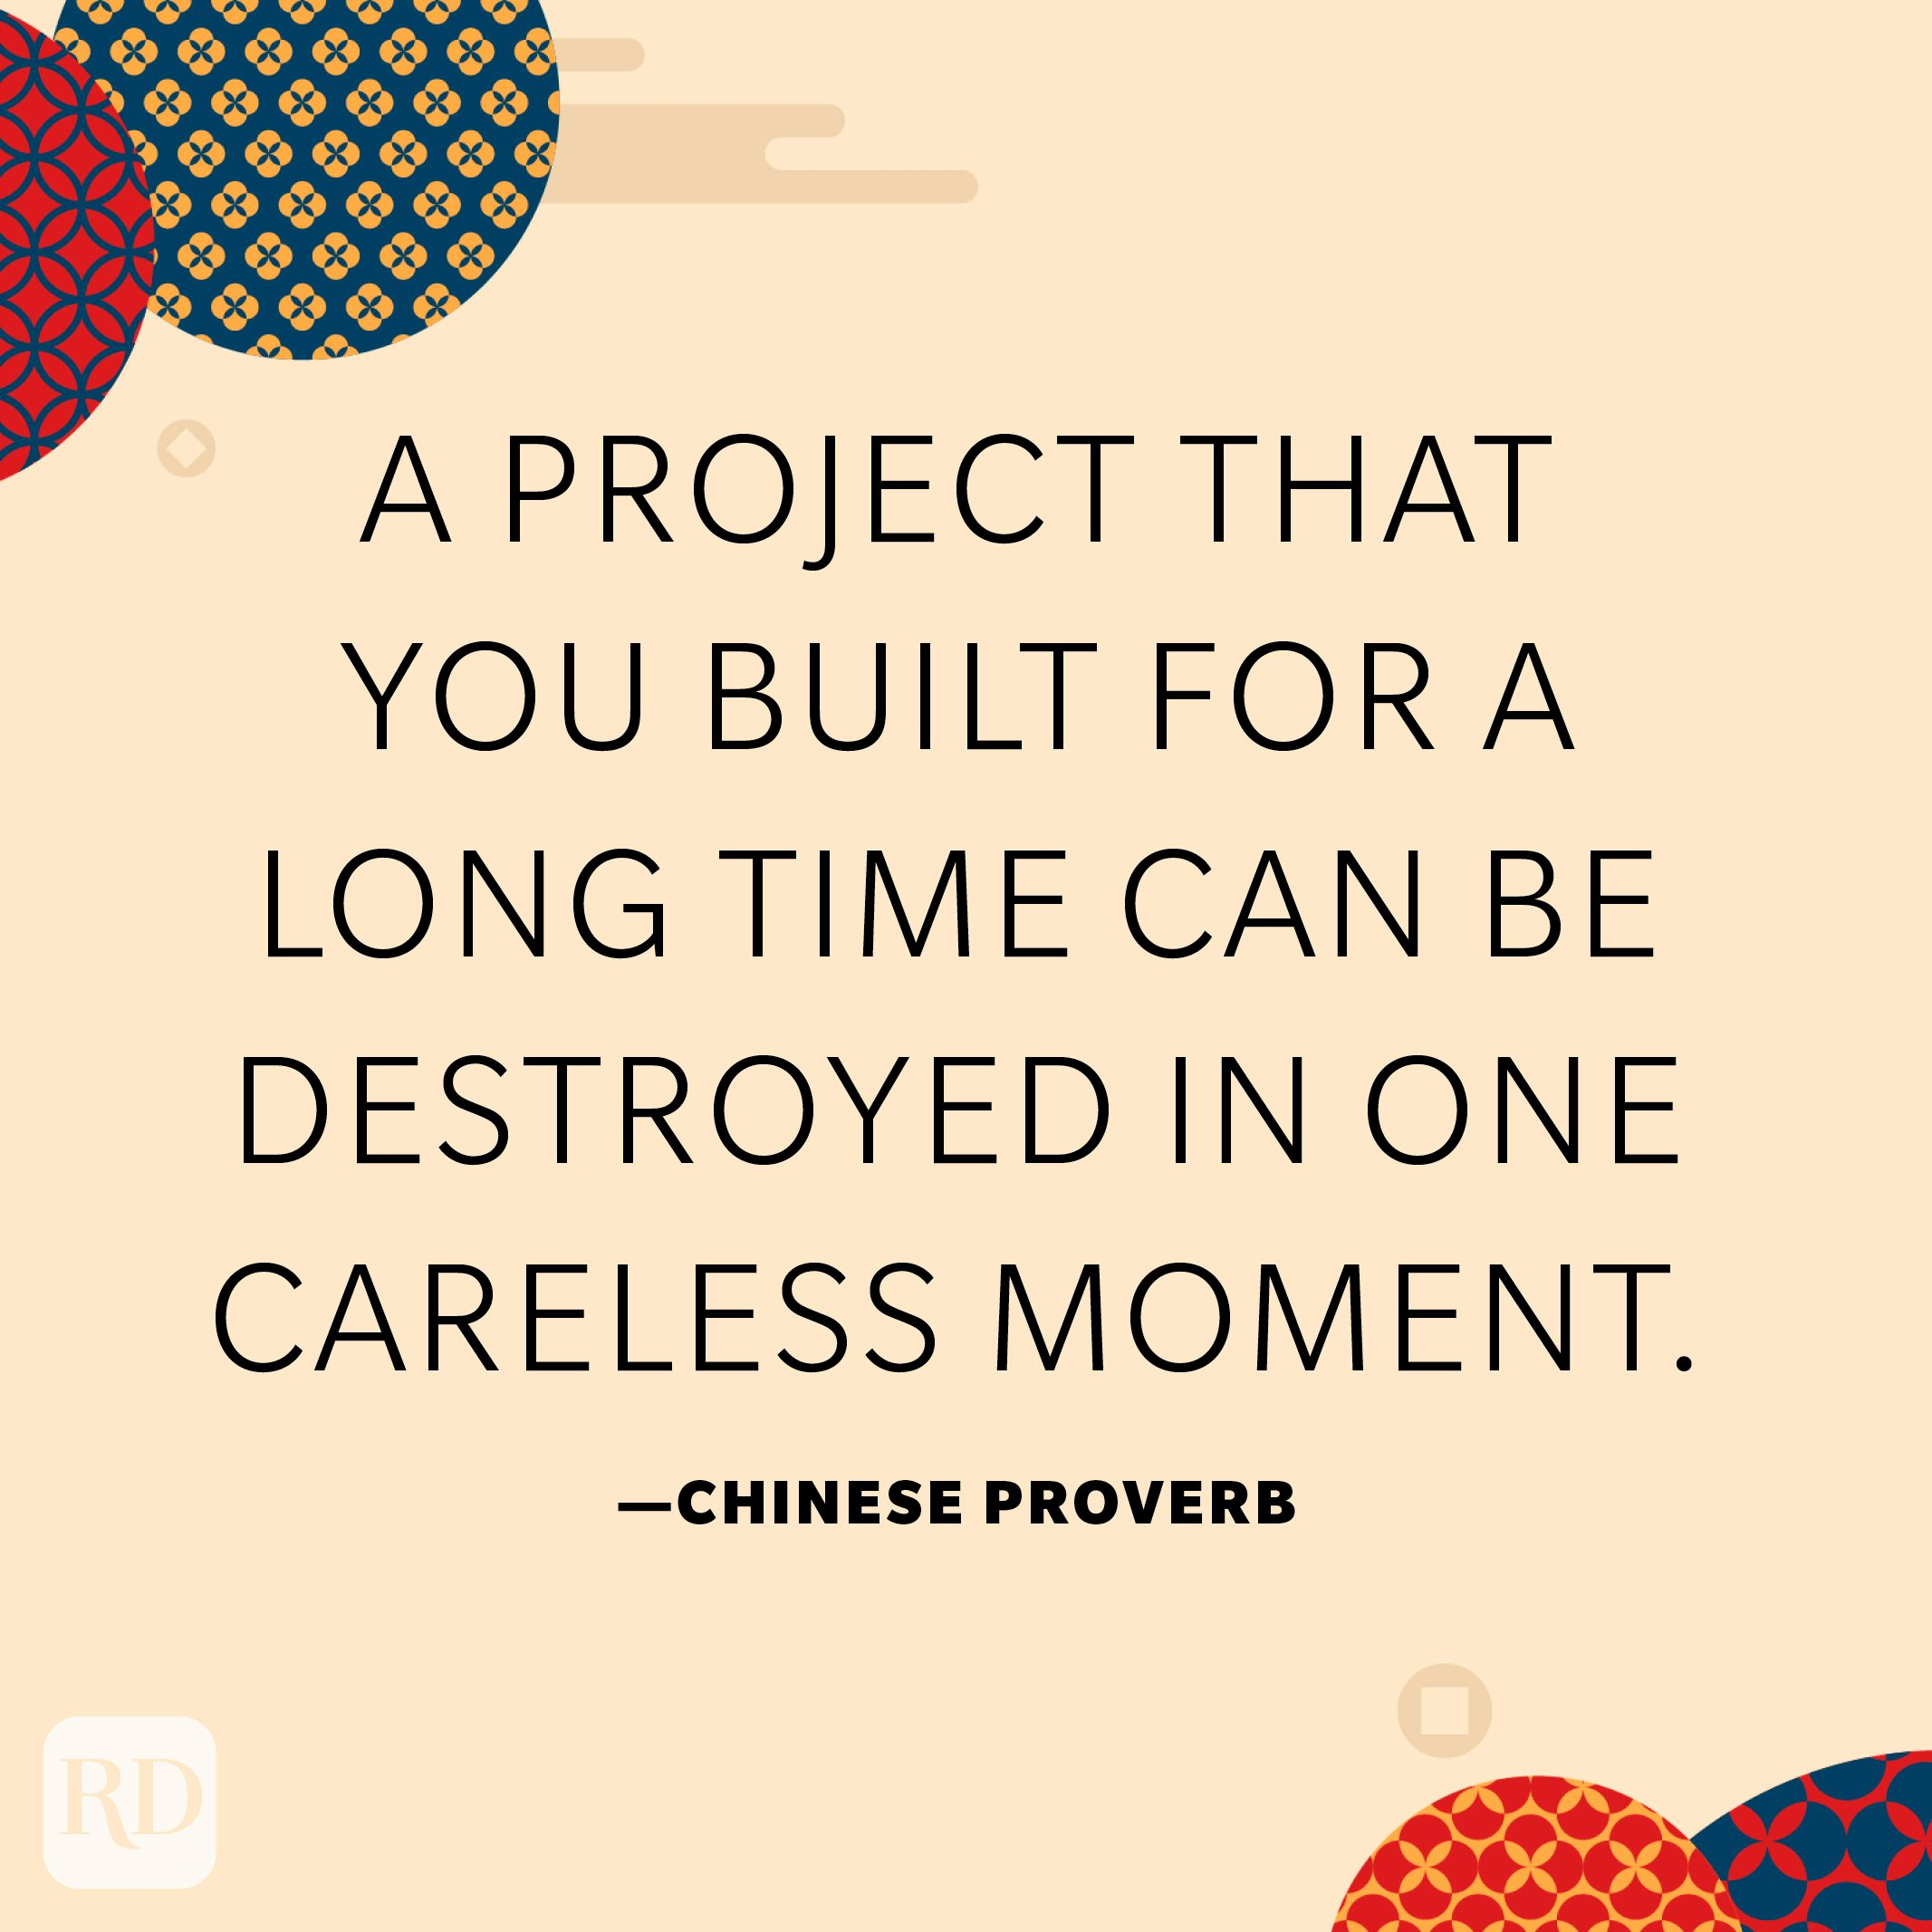 A project that you built for a long time can be destroyed in one careless moment